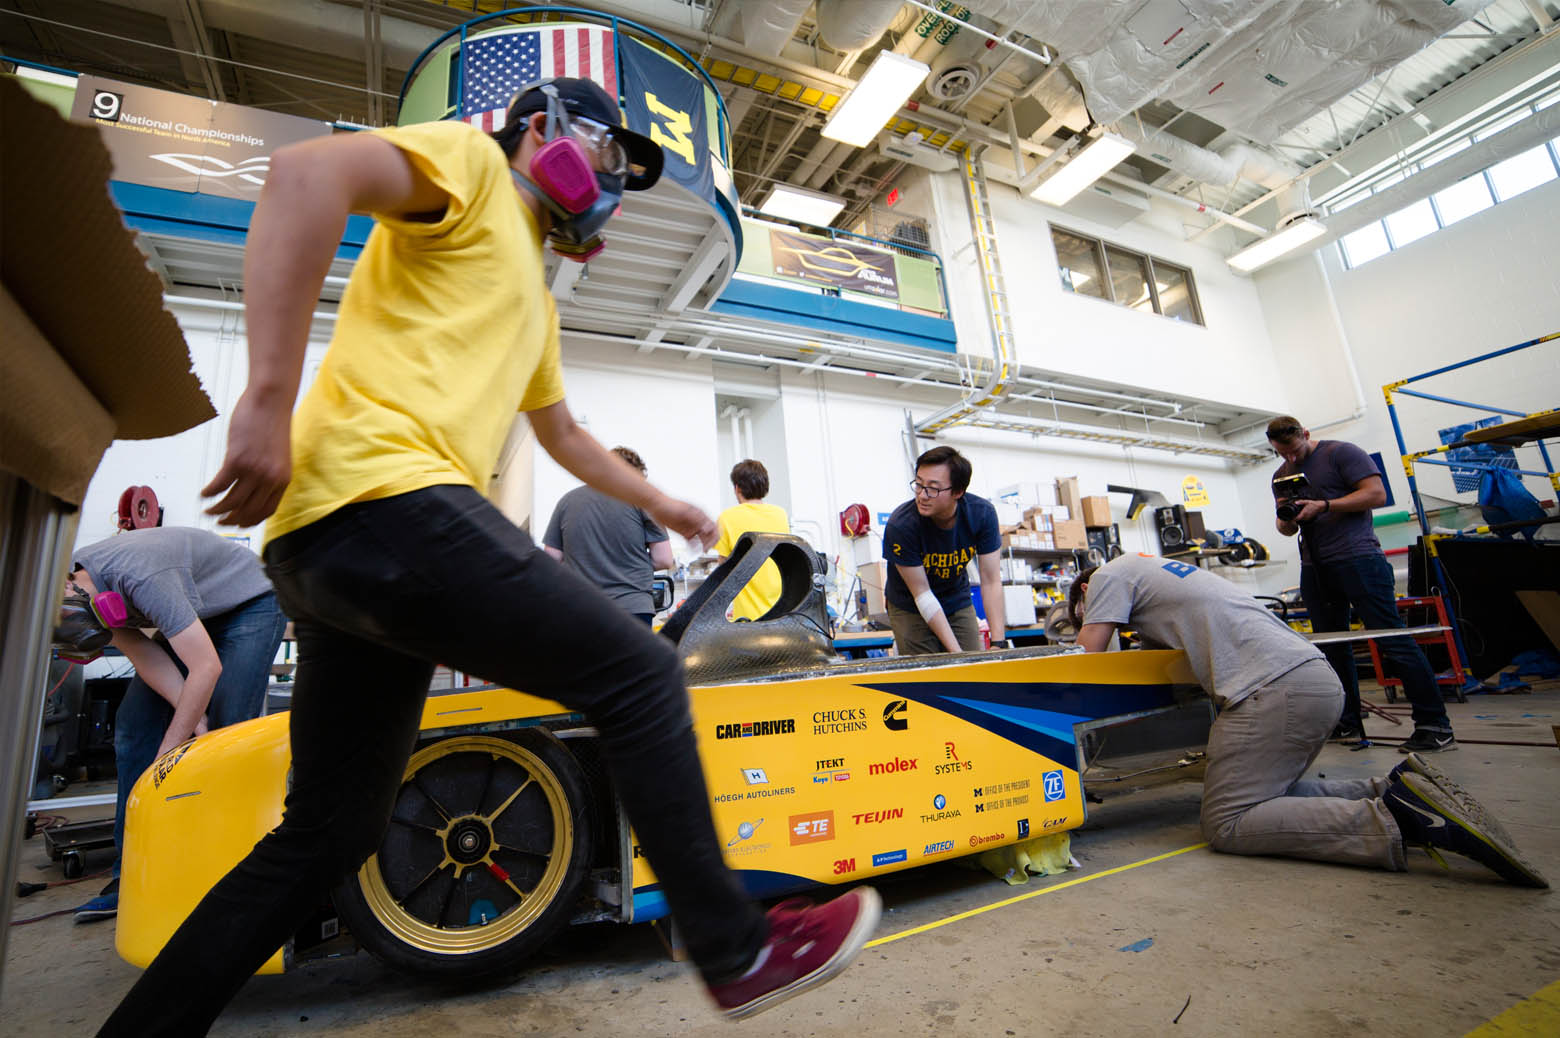 Students on the University of Michigan Solar Car Team work on Novum, the team's 14th solar car and entry into the 2017 Bridgestone World Solar Challenge.